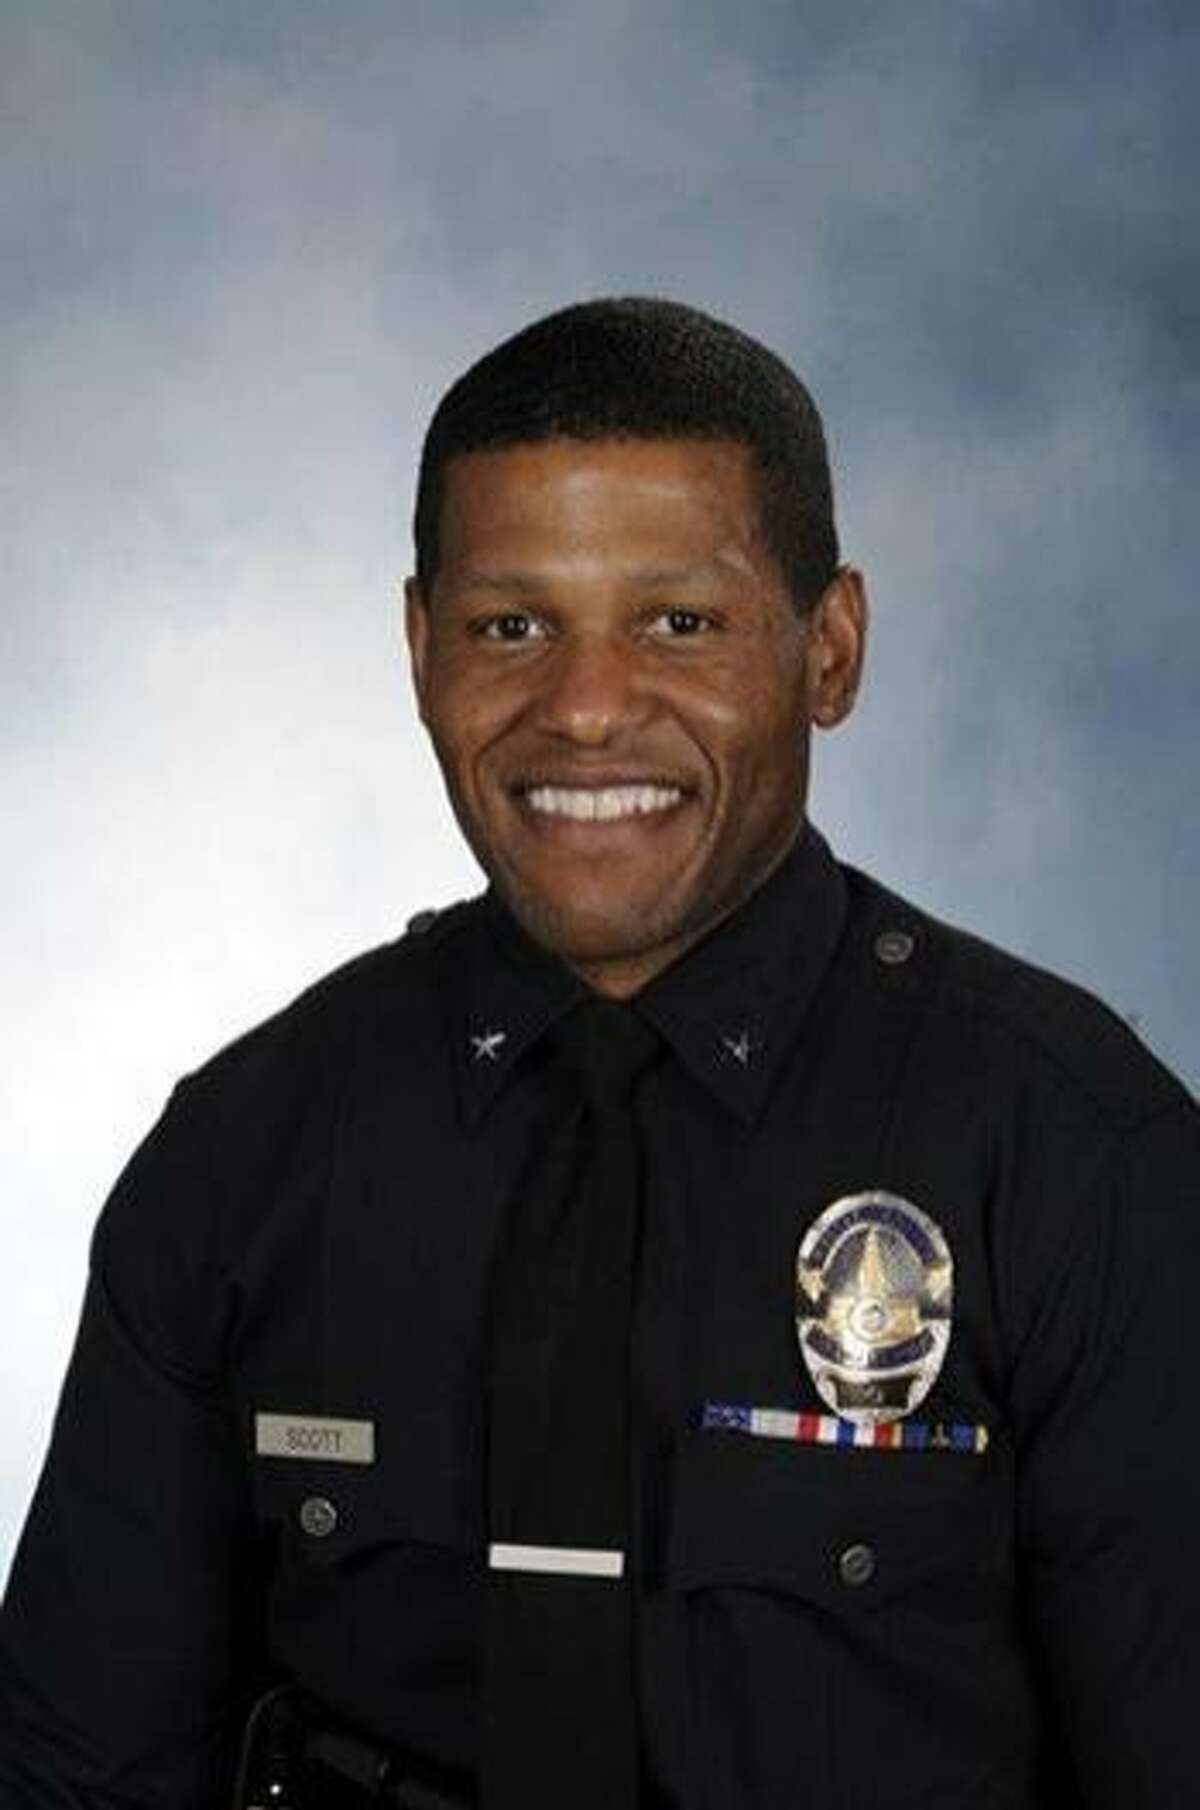 LAPD Deputy Chief William Scott